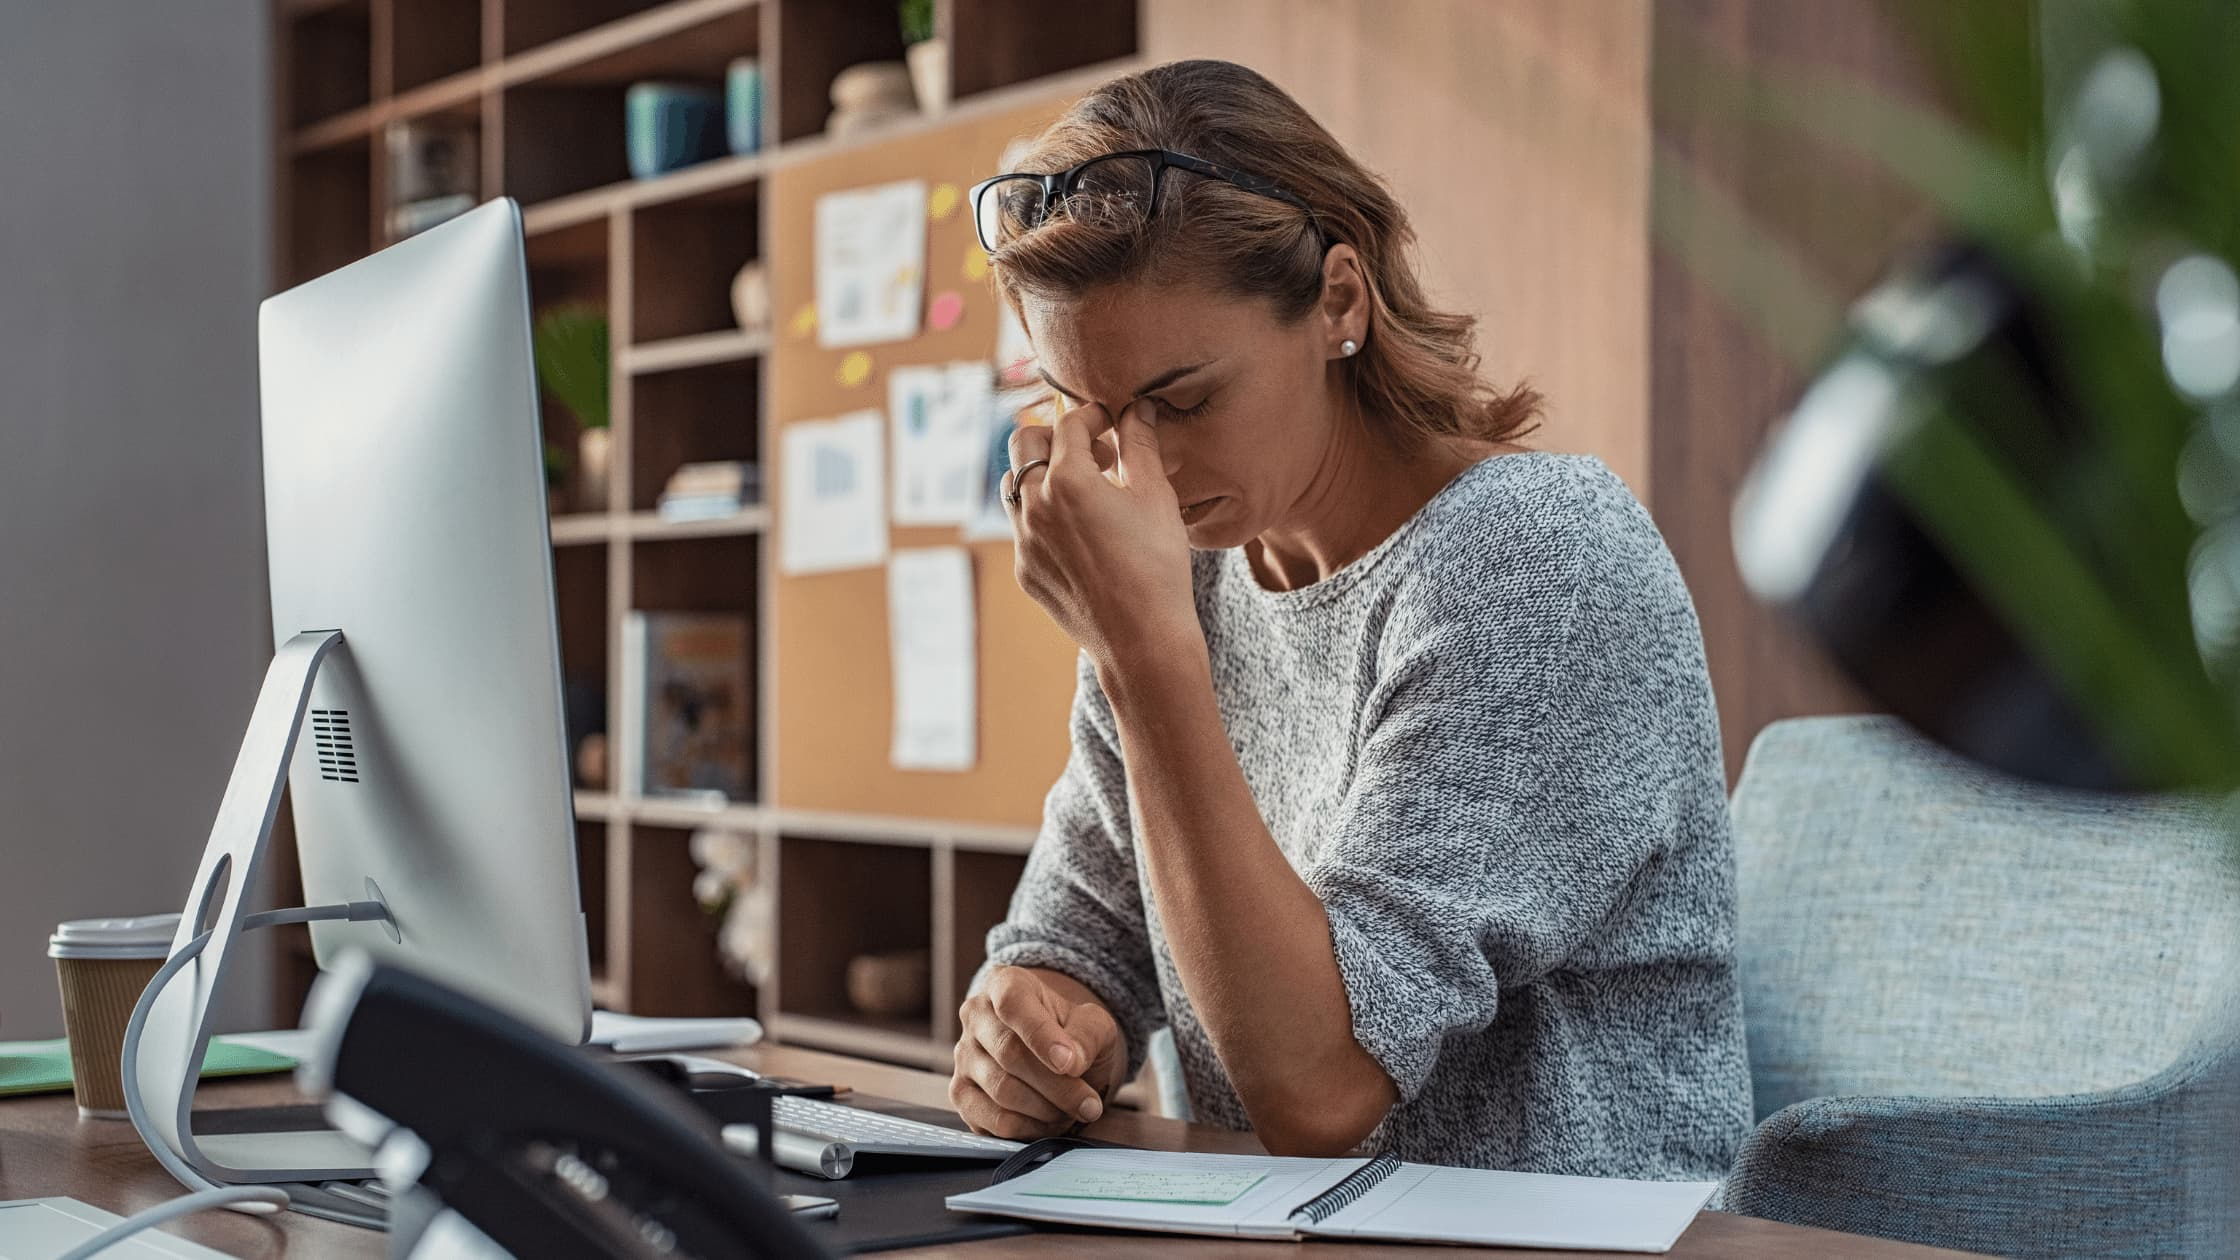 How To Manage Worker Burnout In The Construction Industry